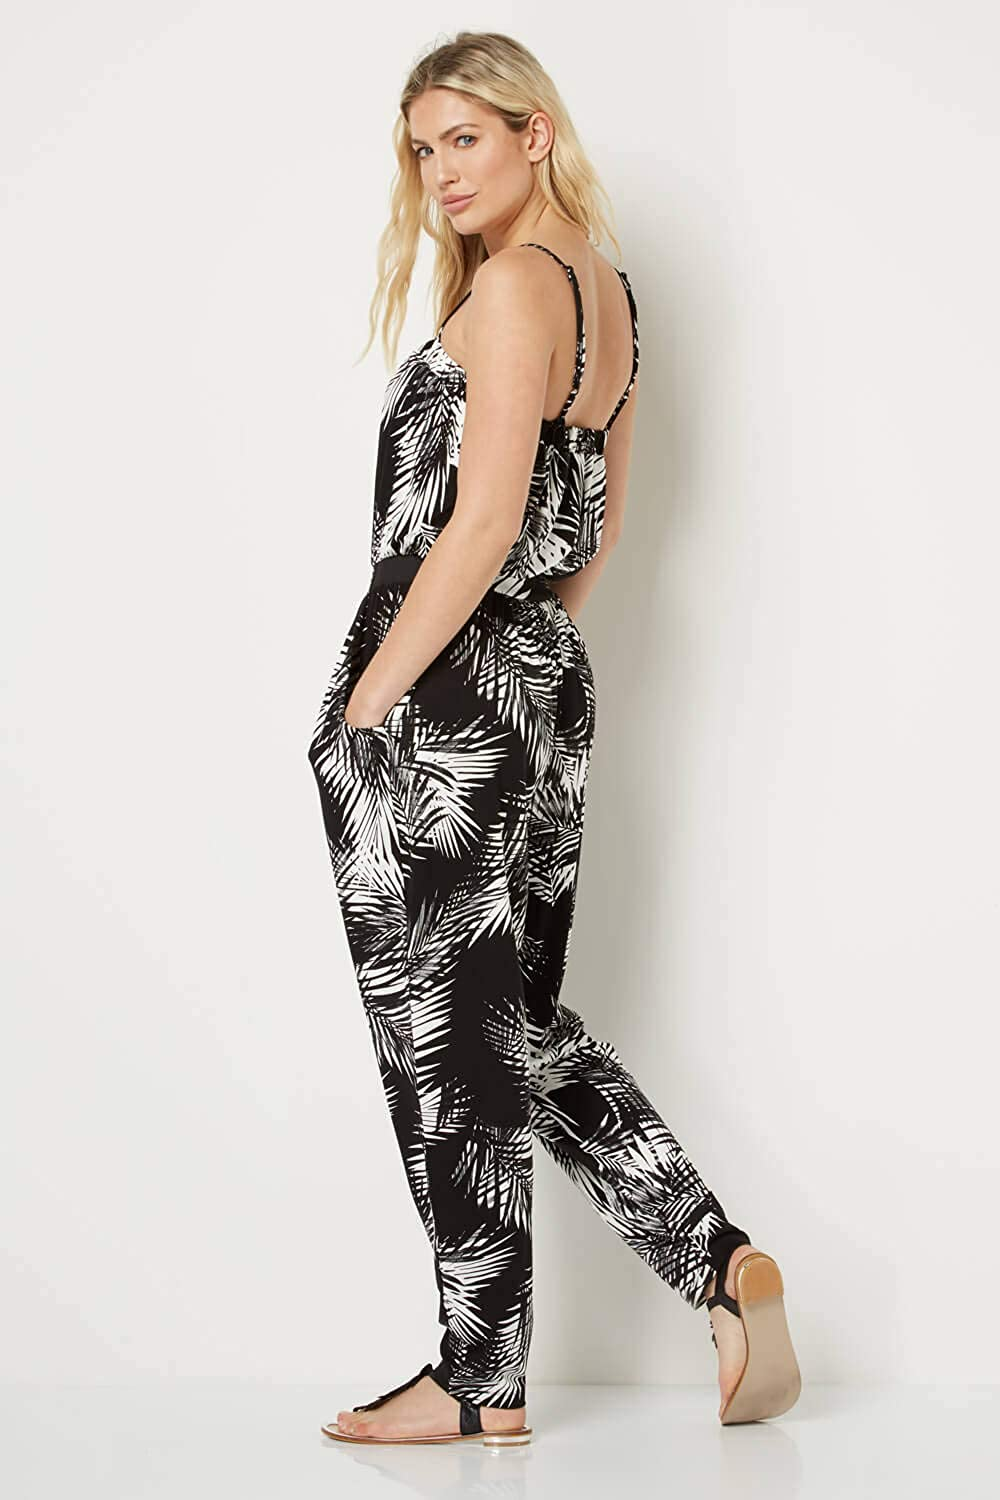 Ladies Jumpsuits for Summer Holiday Casual Daytime Party Going Out Roman Originals Women Tropical Floral Monochrome Jumpsuit